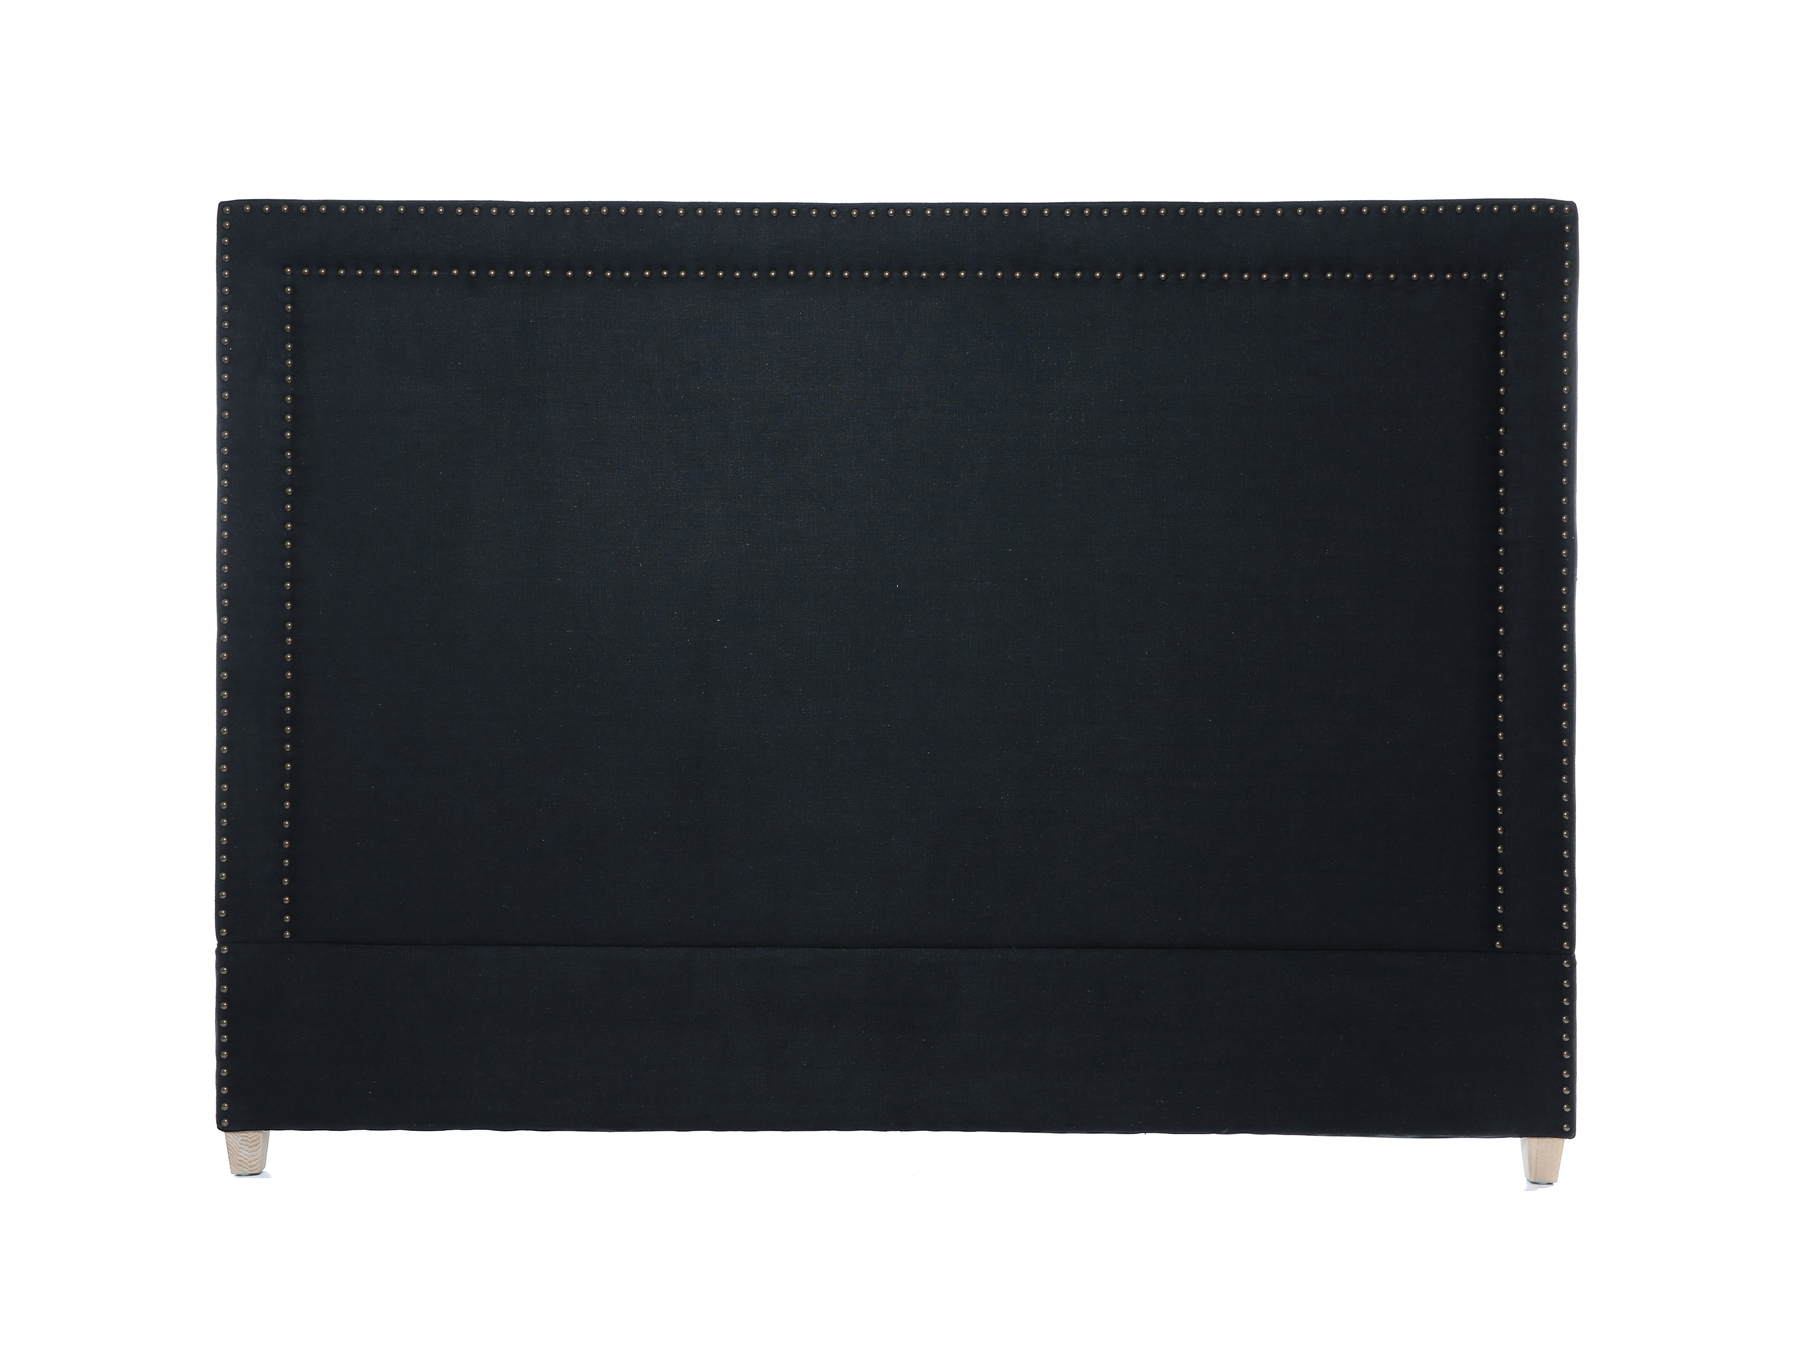 Linens & More George Headboard in Black Linen available at McKenzie & Willis